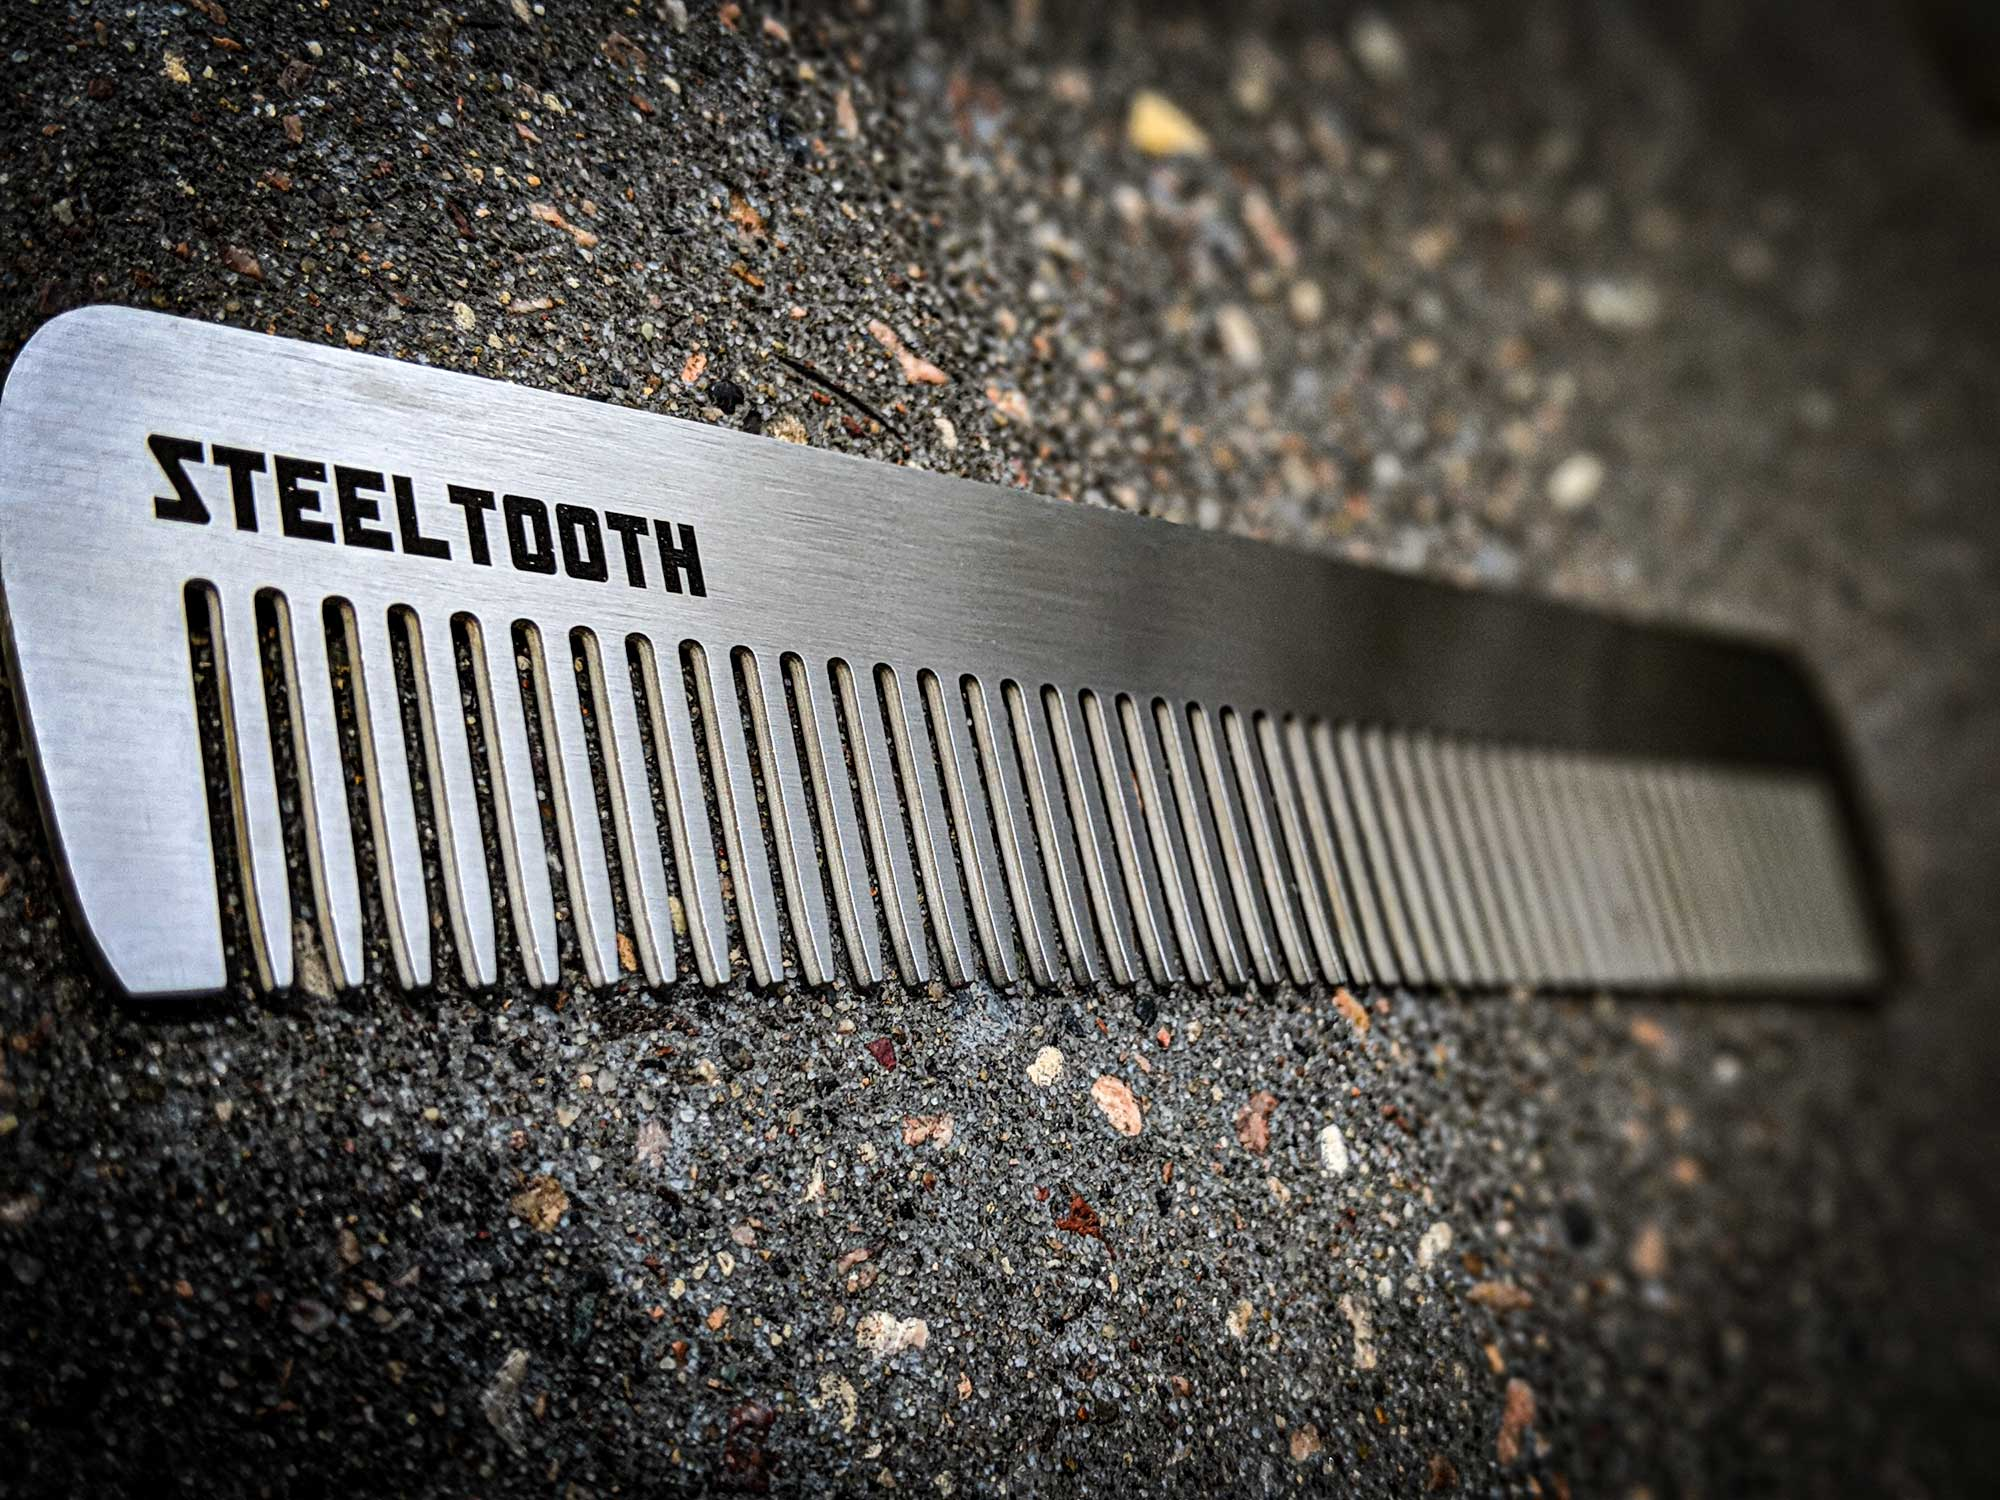 Steeltooth retro apex dresser comb made of stainless steel.